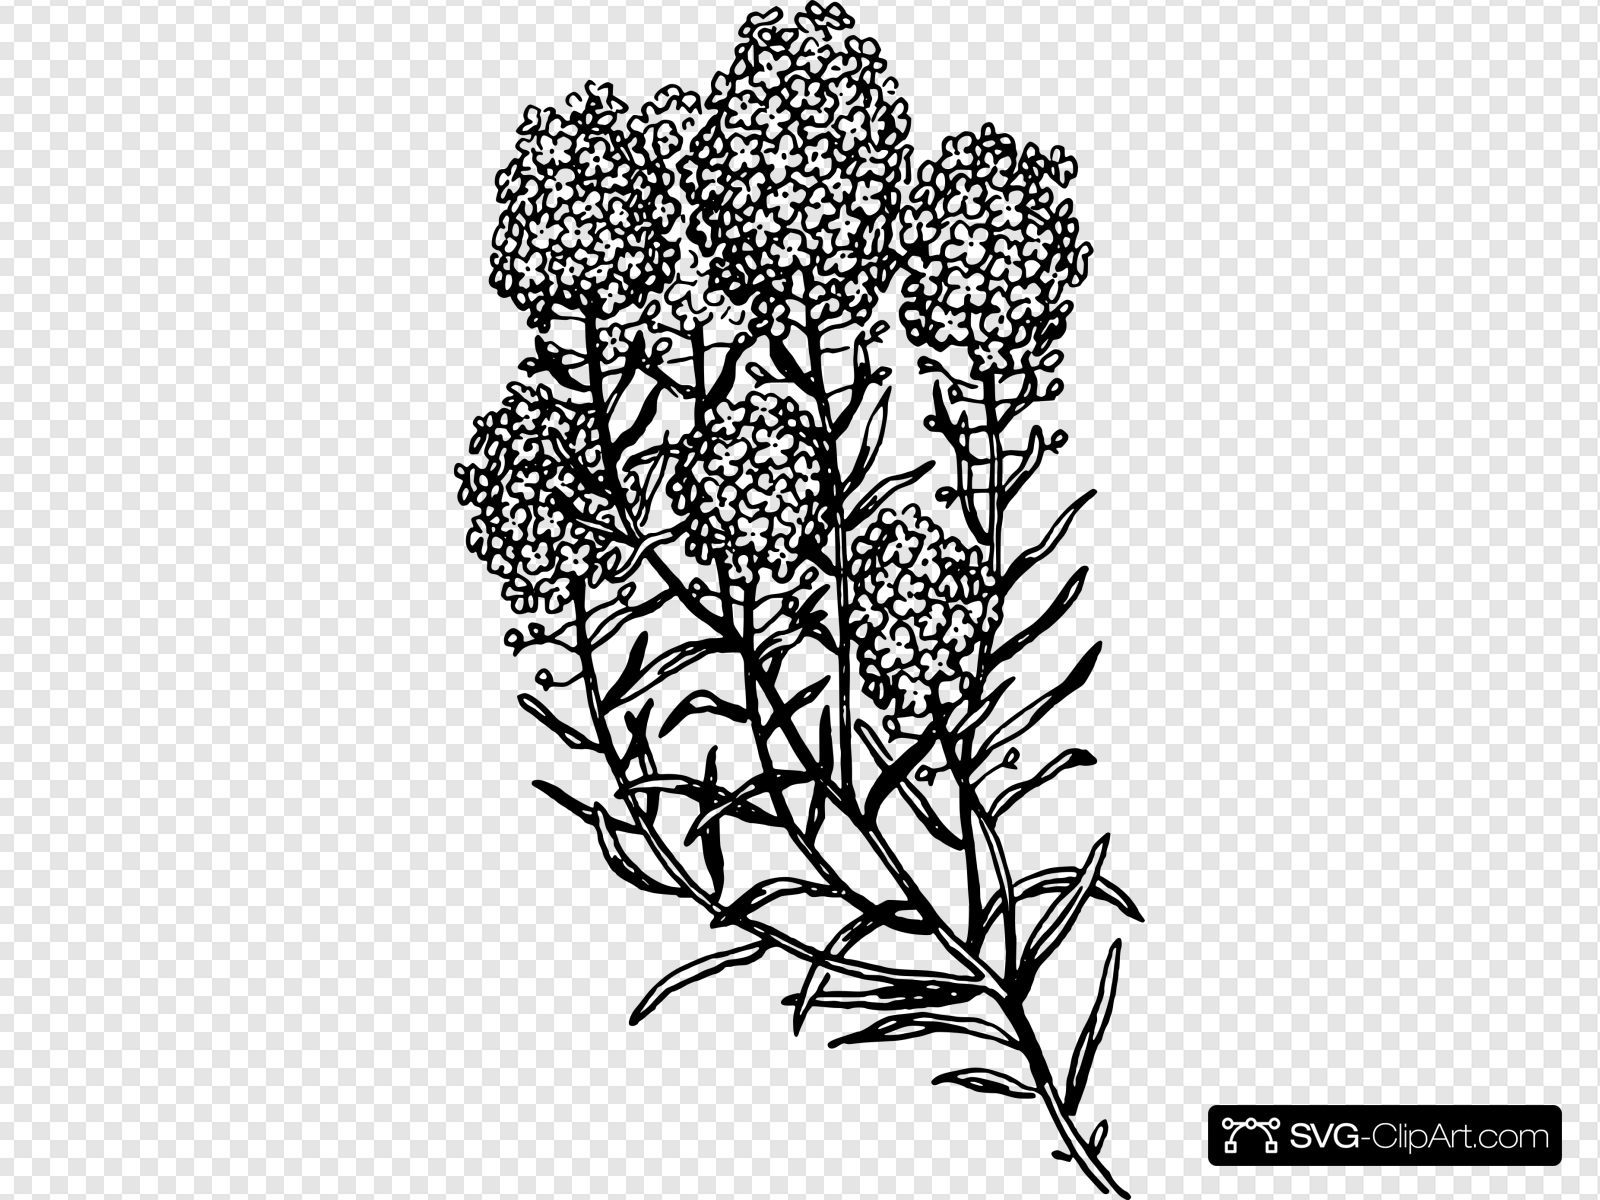 Alyssum Drawing Clip art, Icon and SVG.